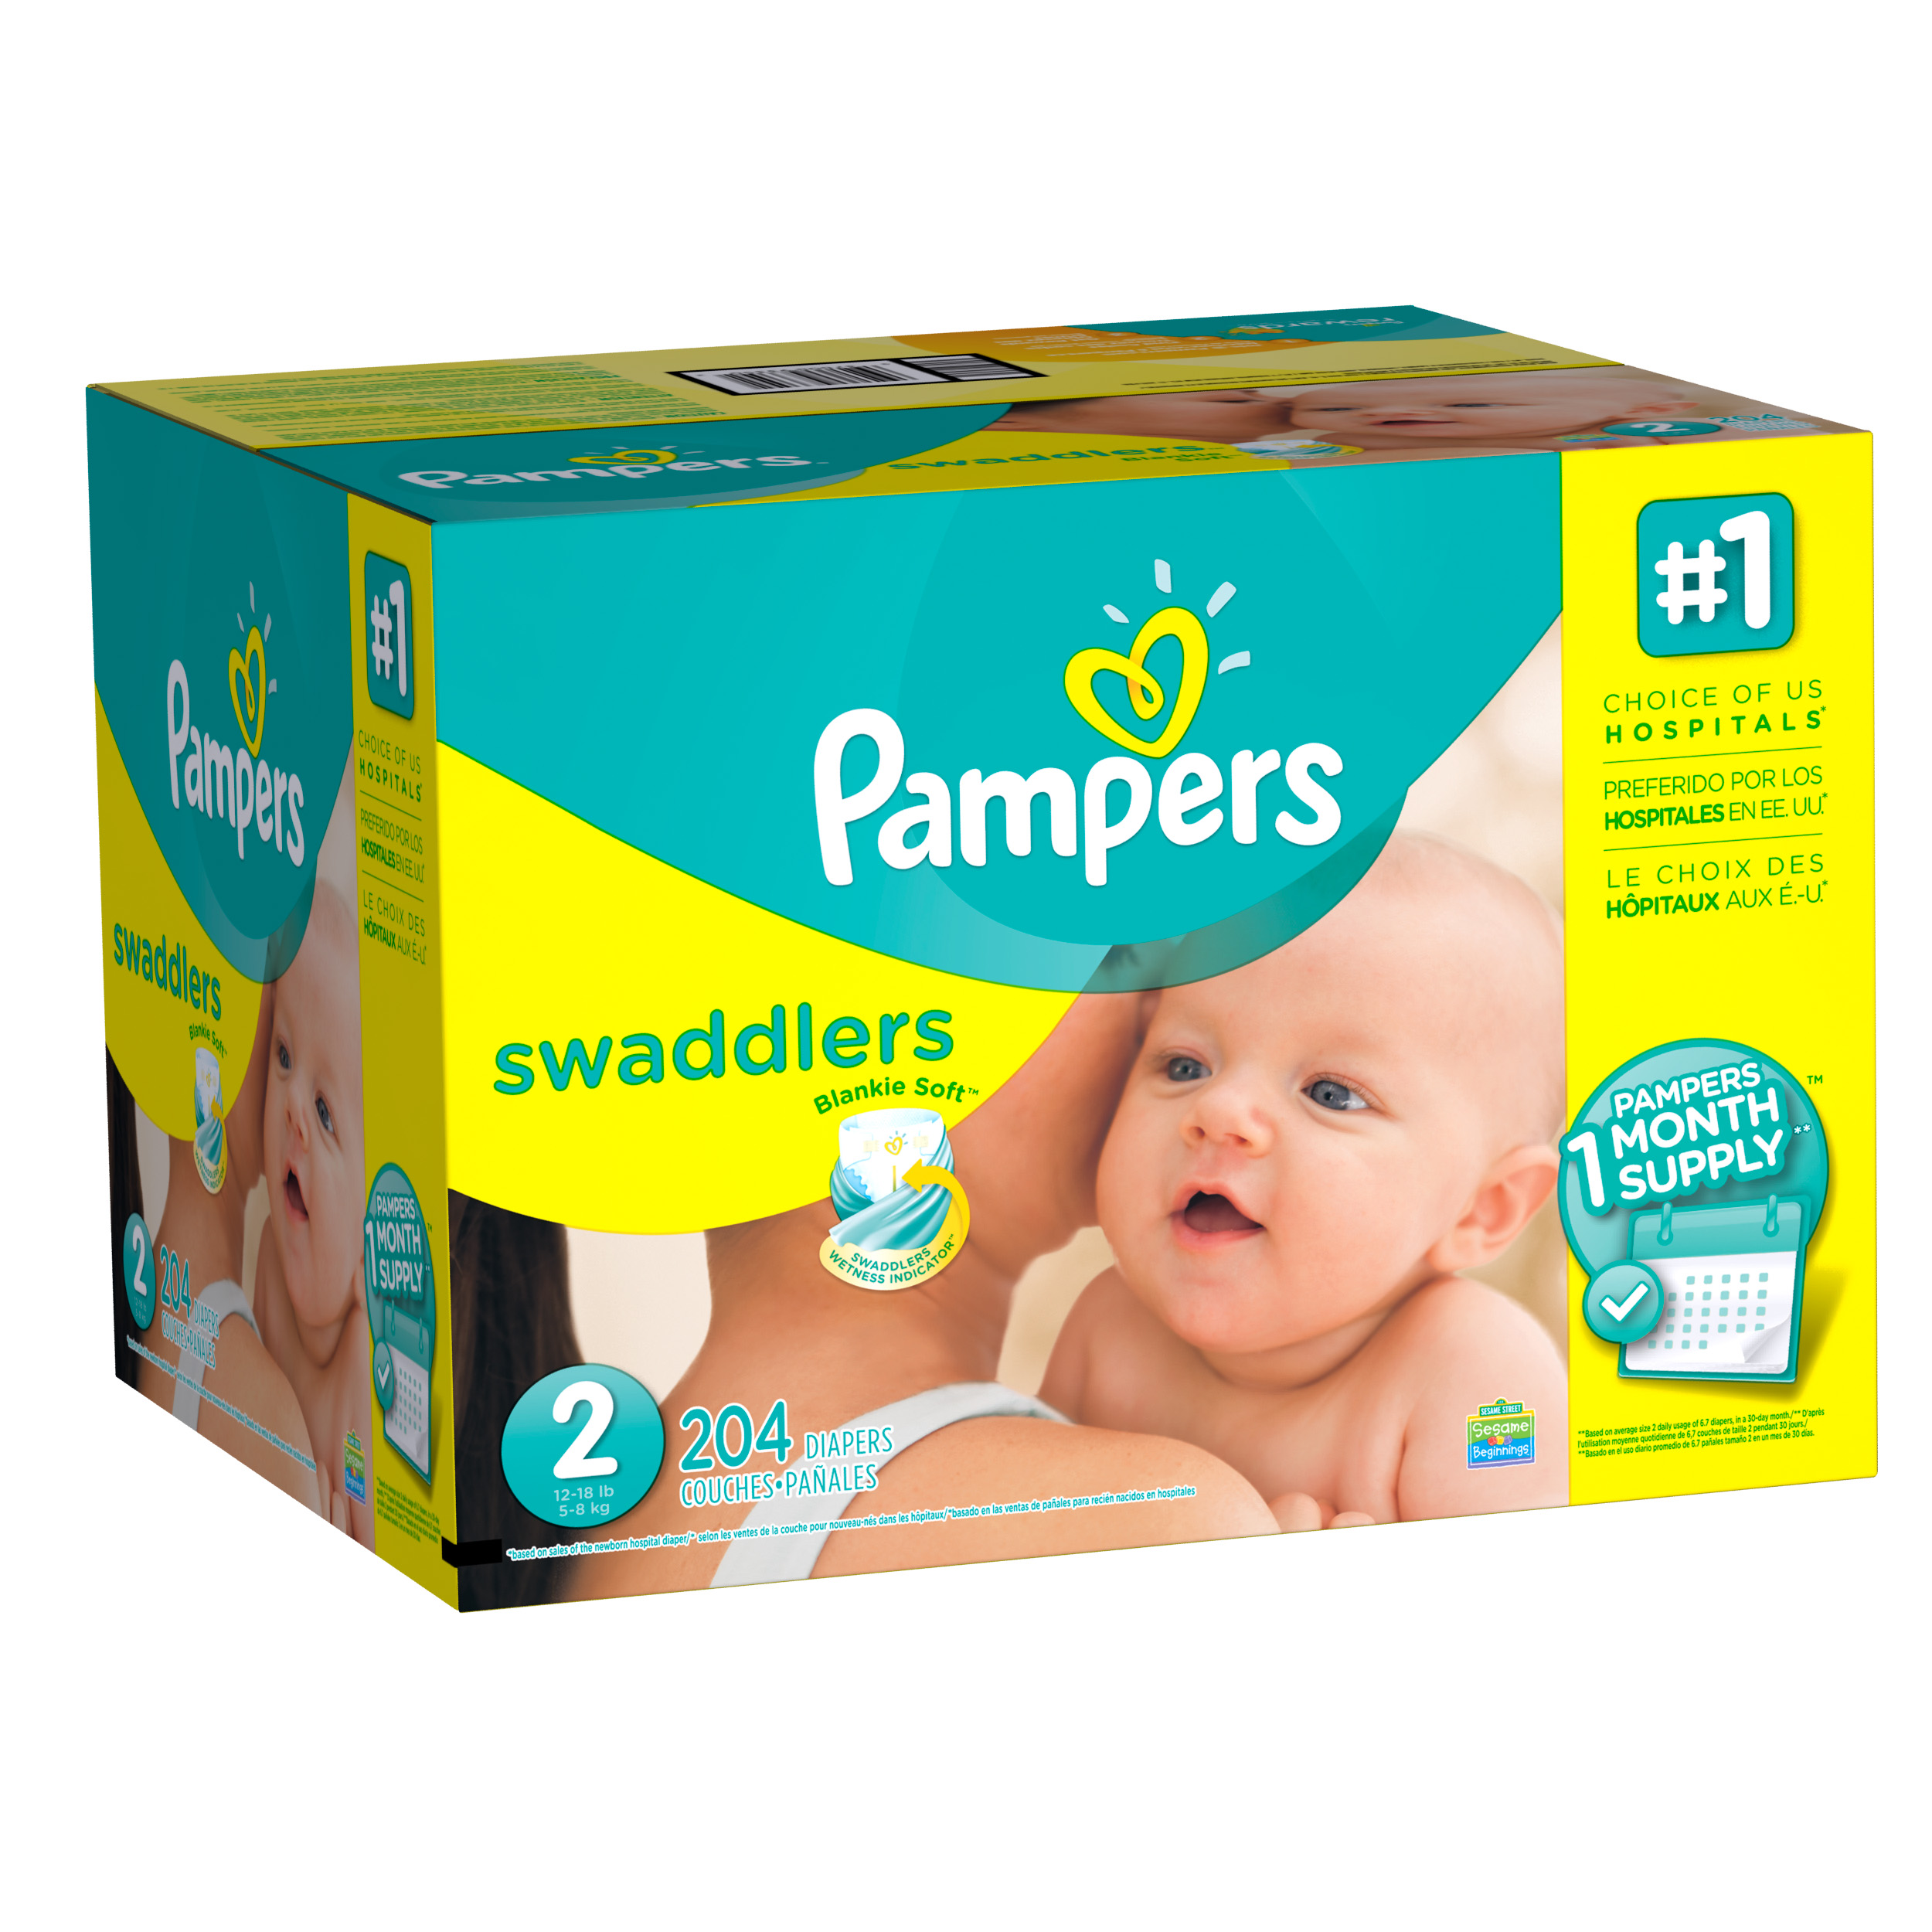 Pampers Swaddlers Diapers, Size 2, 204 Diapers